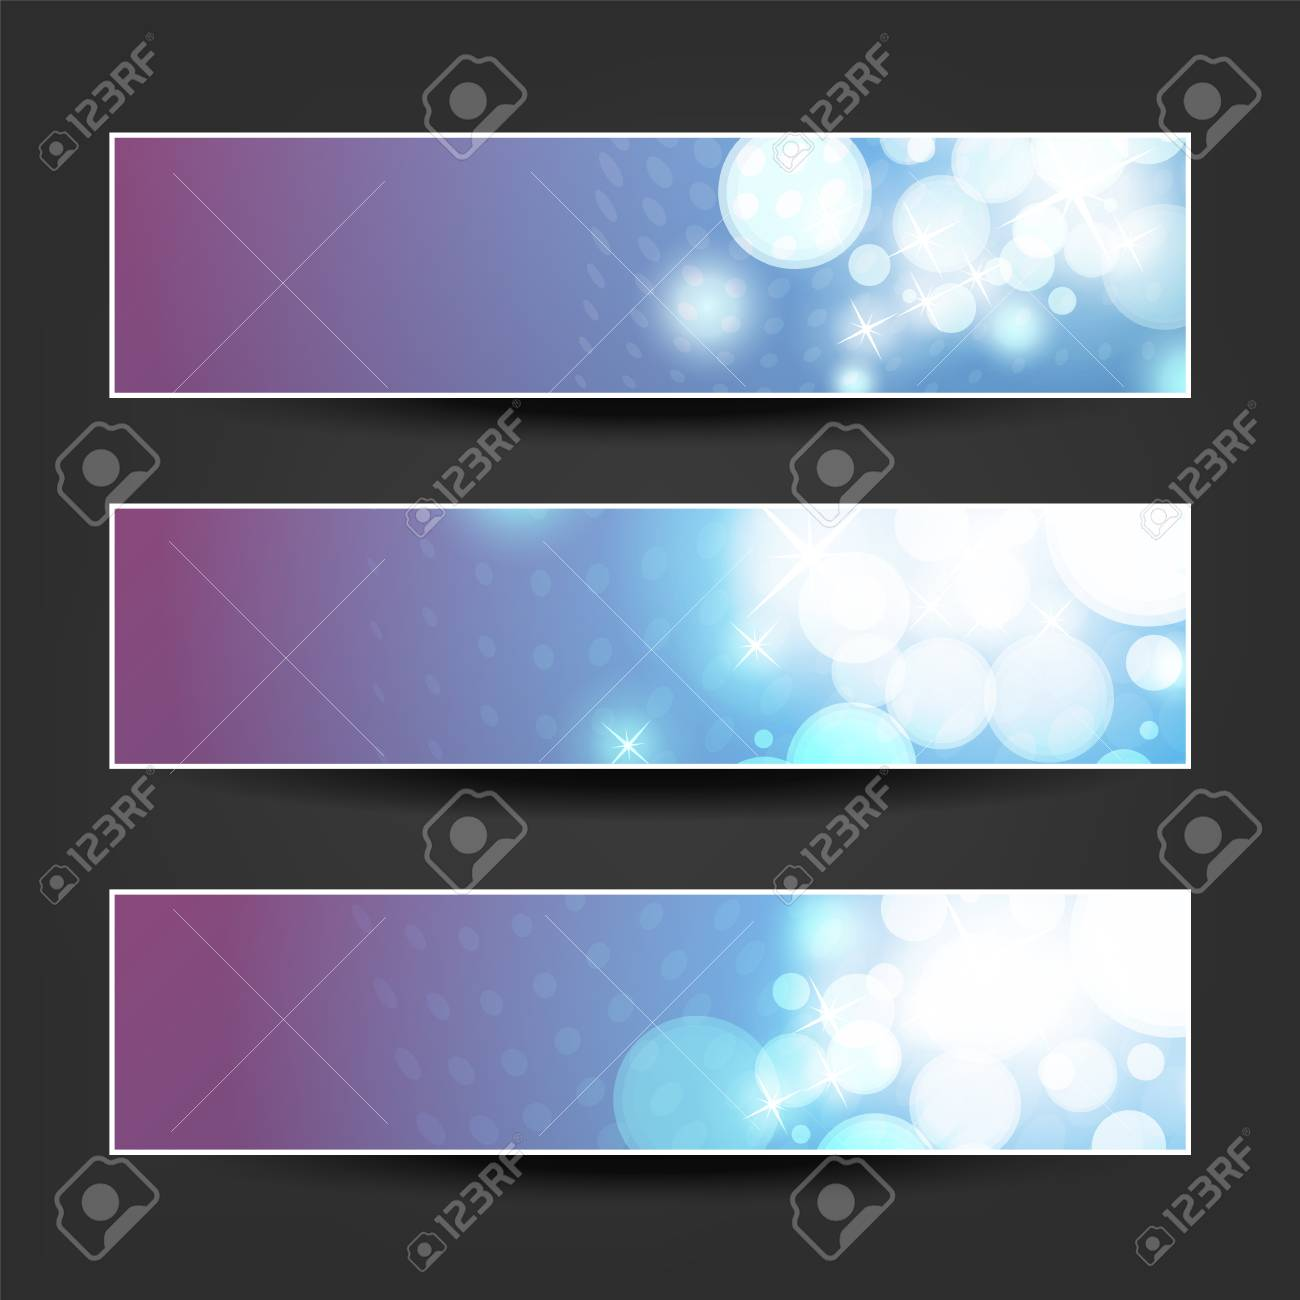 set of blue white and purple horizontal sparkling banner designs